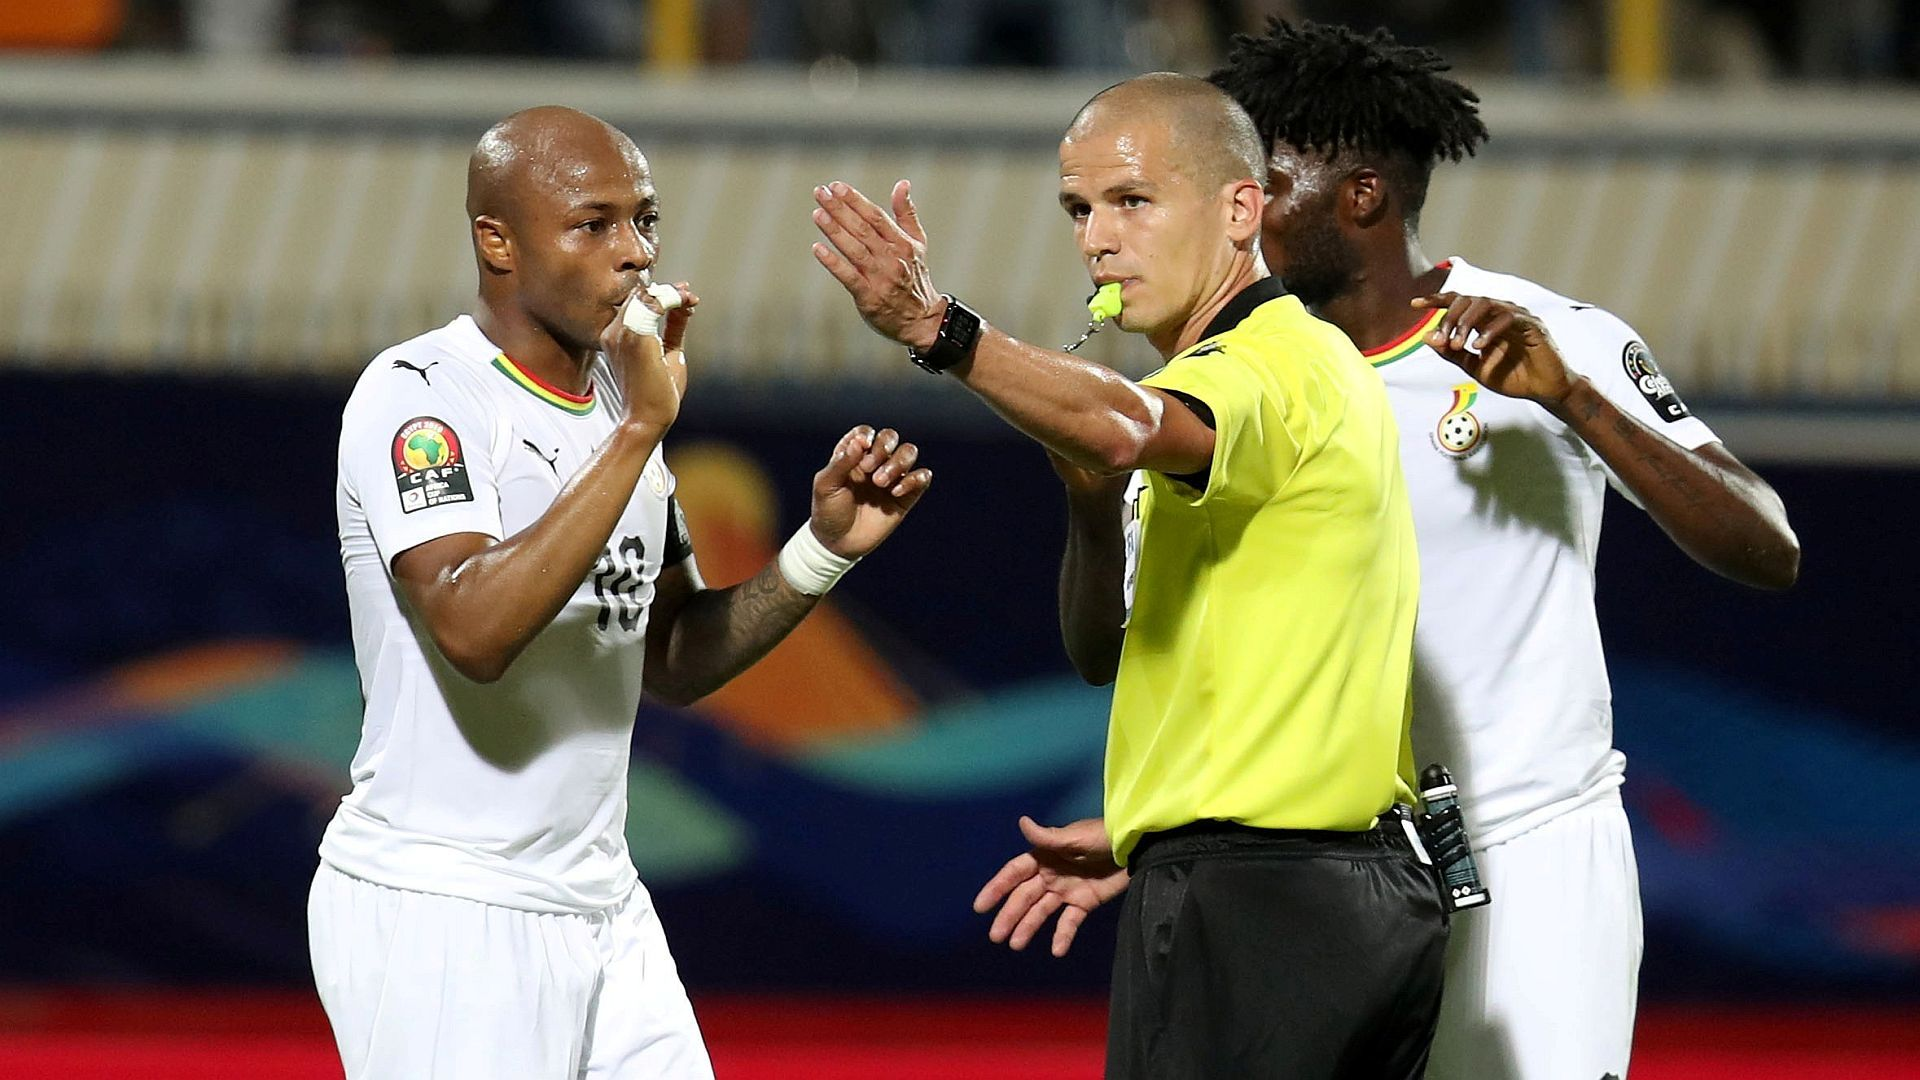 Refereeing is a passion - Victor Gomes